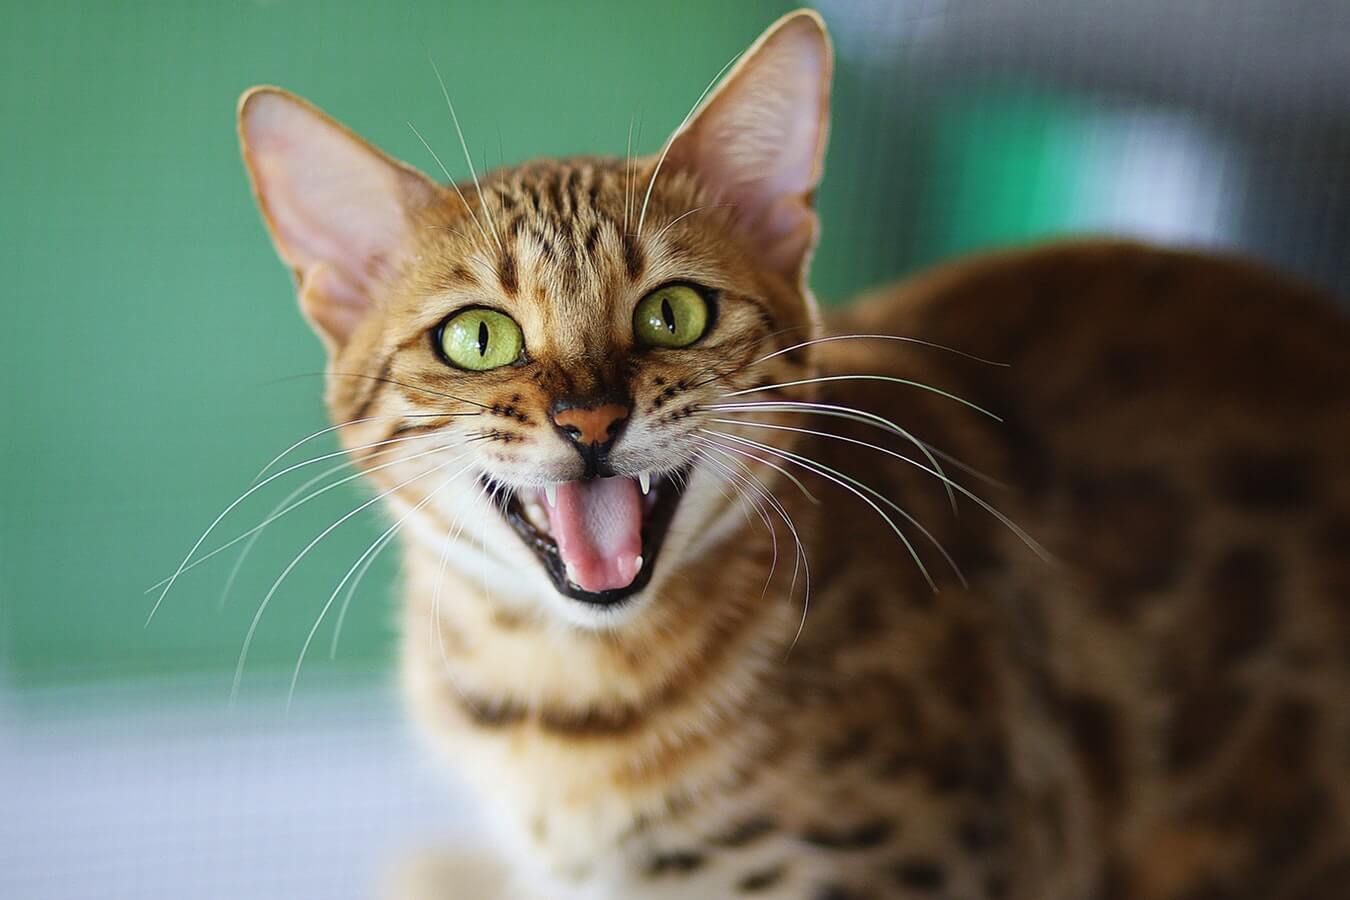 Do Cats Teeth? Cat yawning, Cats, Cats, kittens